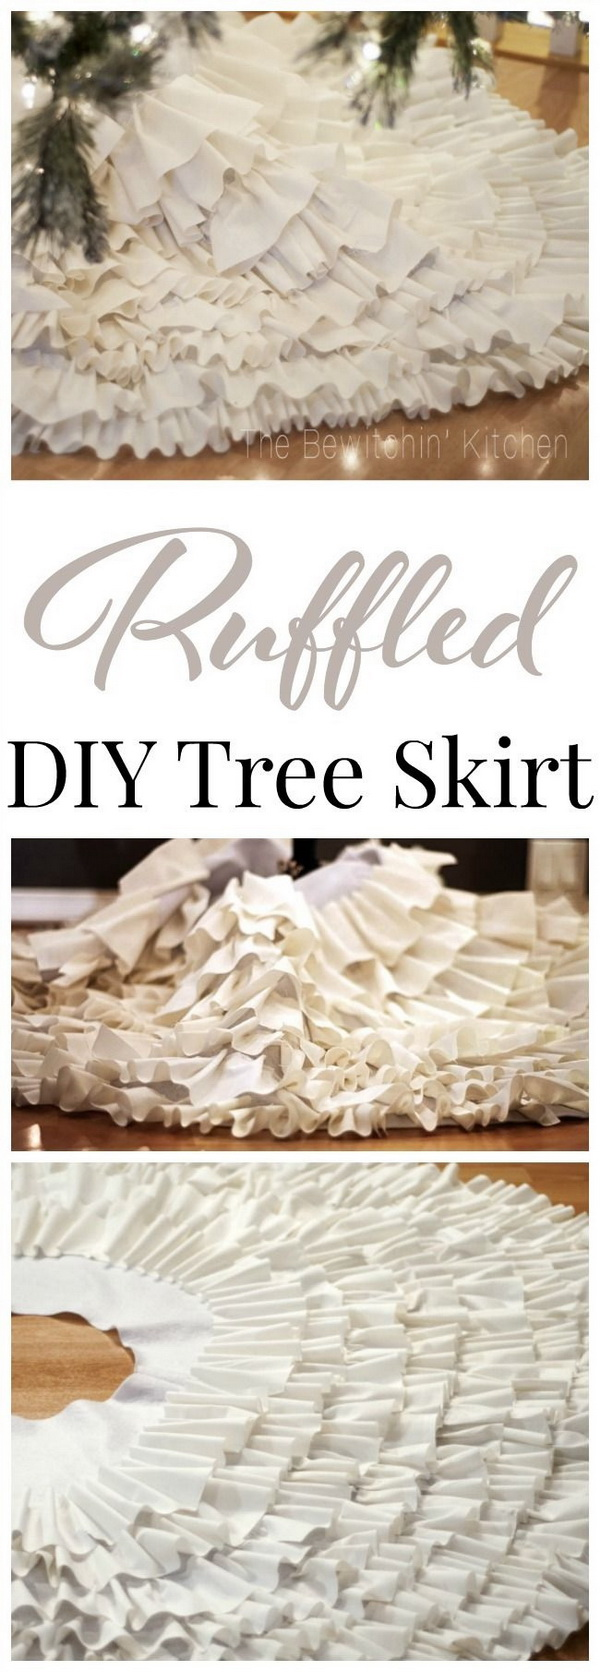 DIY Ruffled Tree Skirt. This no sew DIY ruffled tree skirt is an easy Christmas craft to bring a classy decor to your Christmas tree.